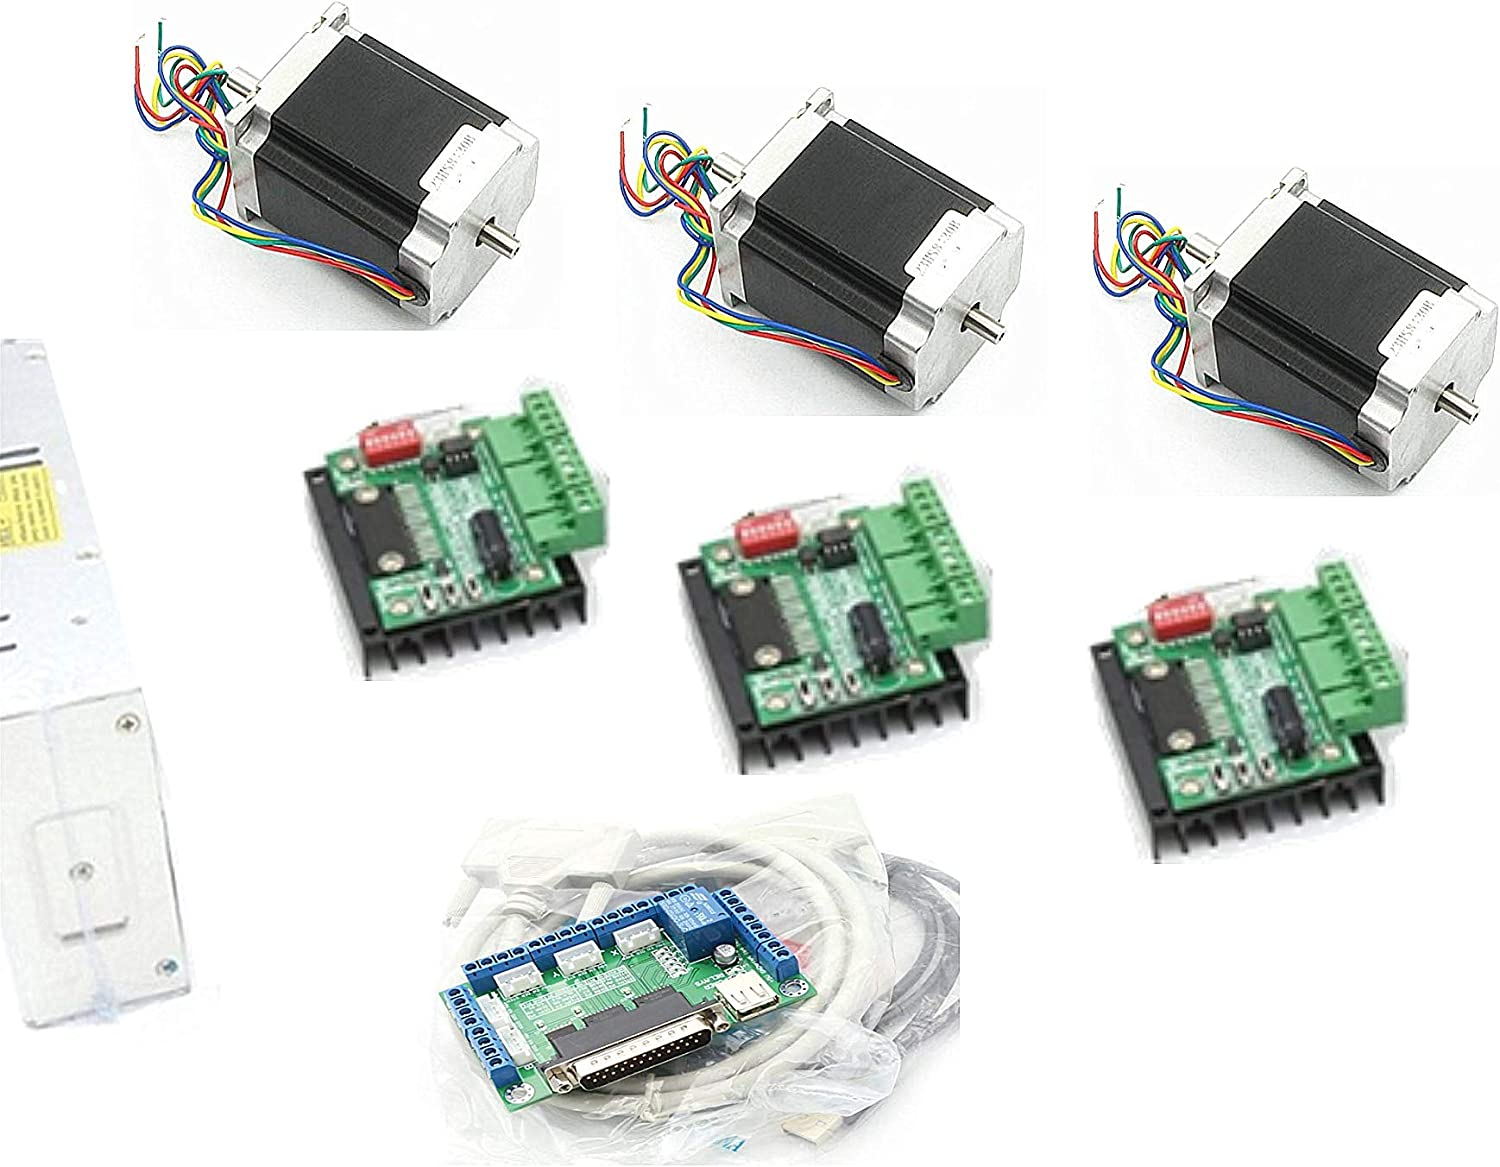 USA CNC Router 1 Axis Controller Stepper Motor Drivers TB6560 3A driver board